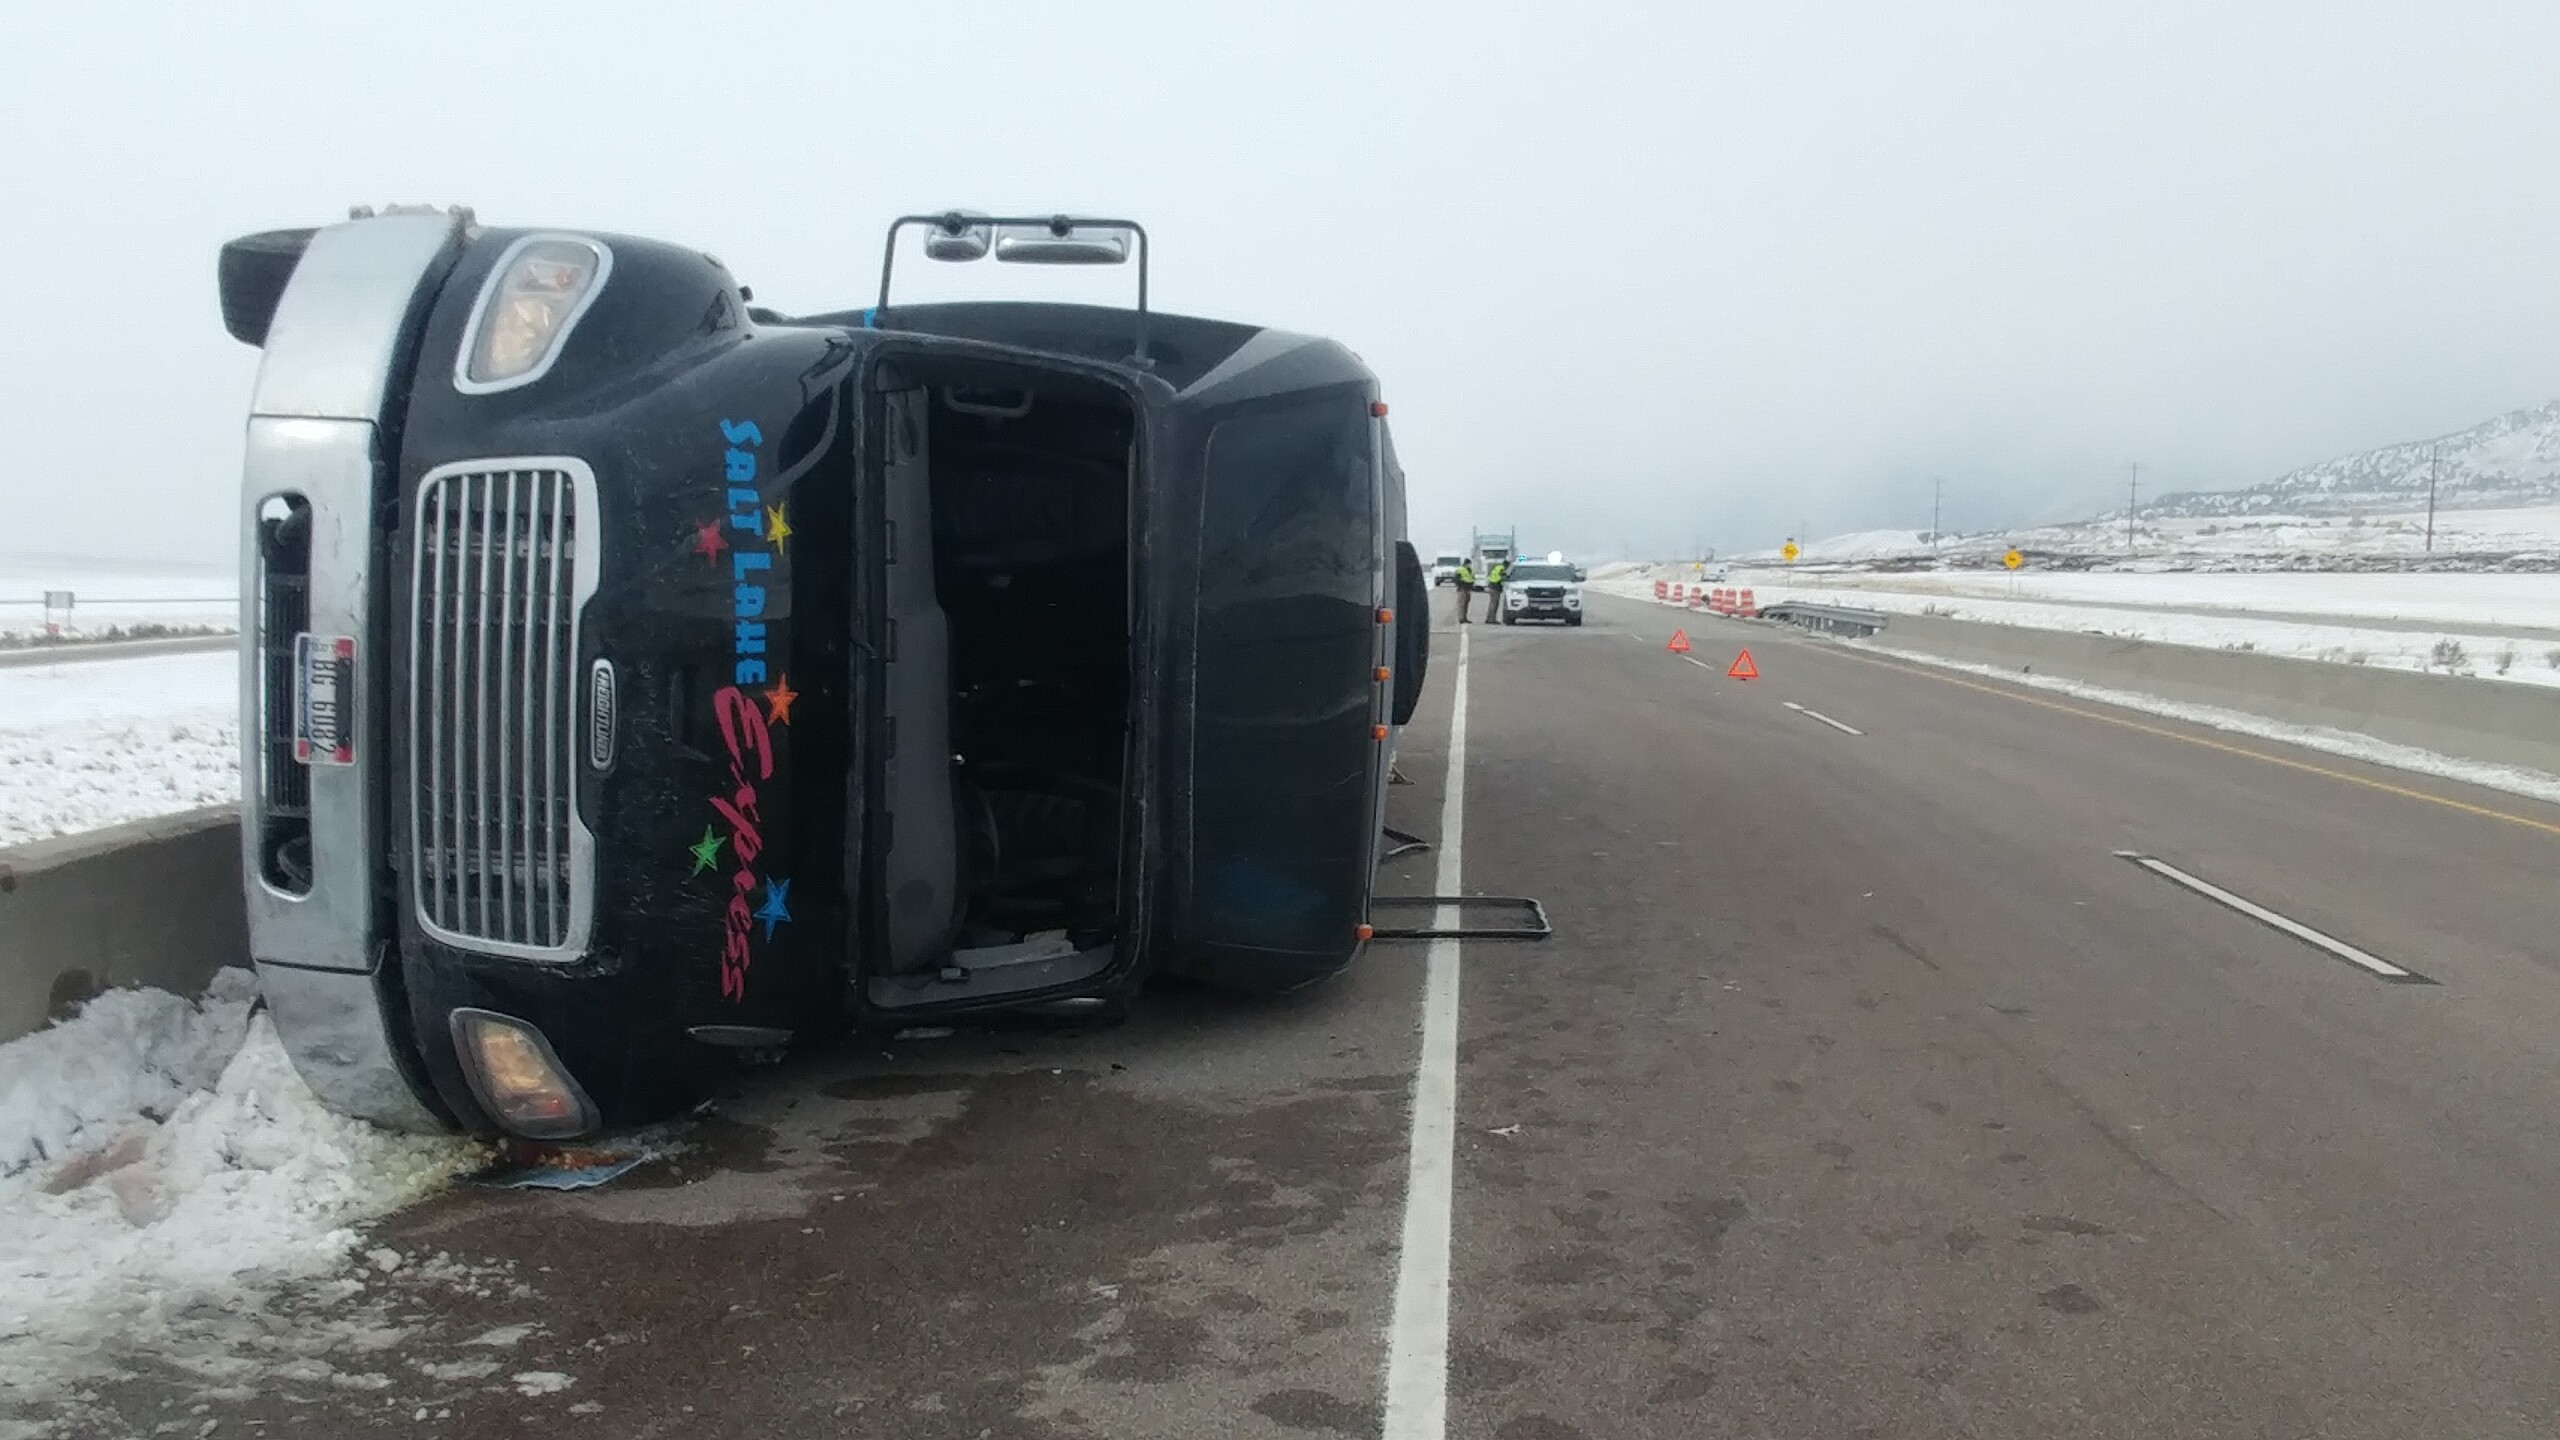 Photos: Minor injuries after shuttle bus crashes on I-15 in northern Utah